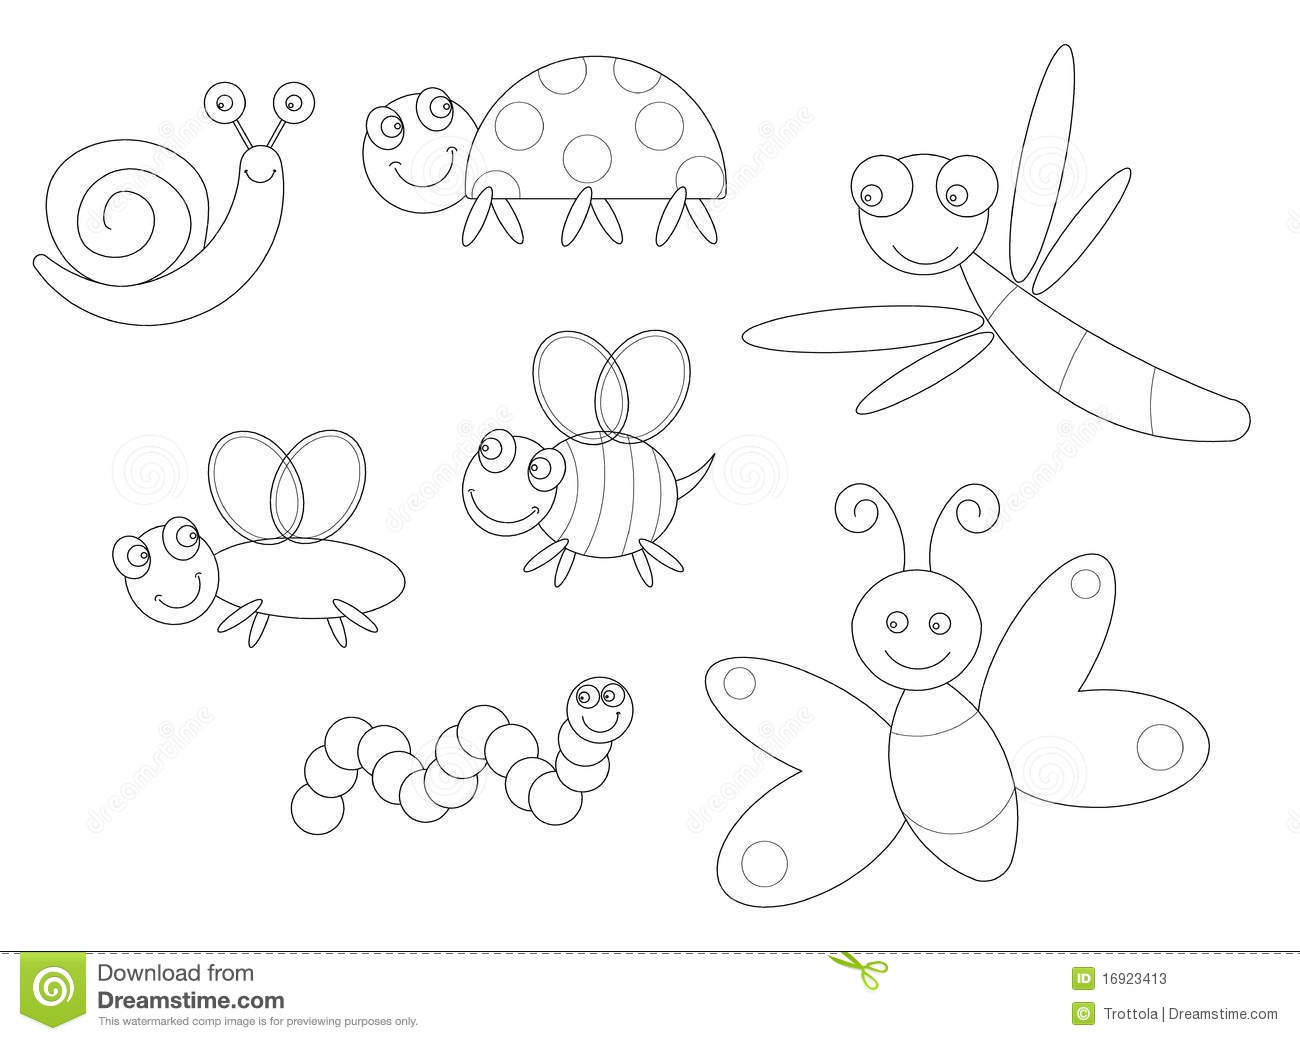 coloring pictures of insects insect coloring download insect coloring for free 2019 coloring of pictures insects